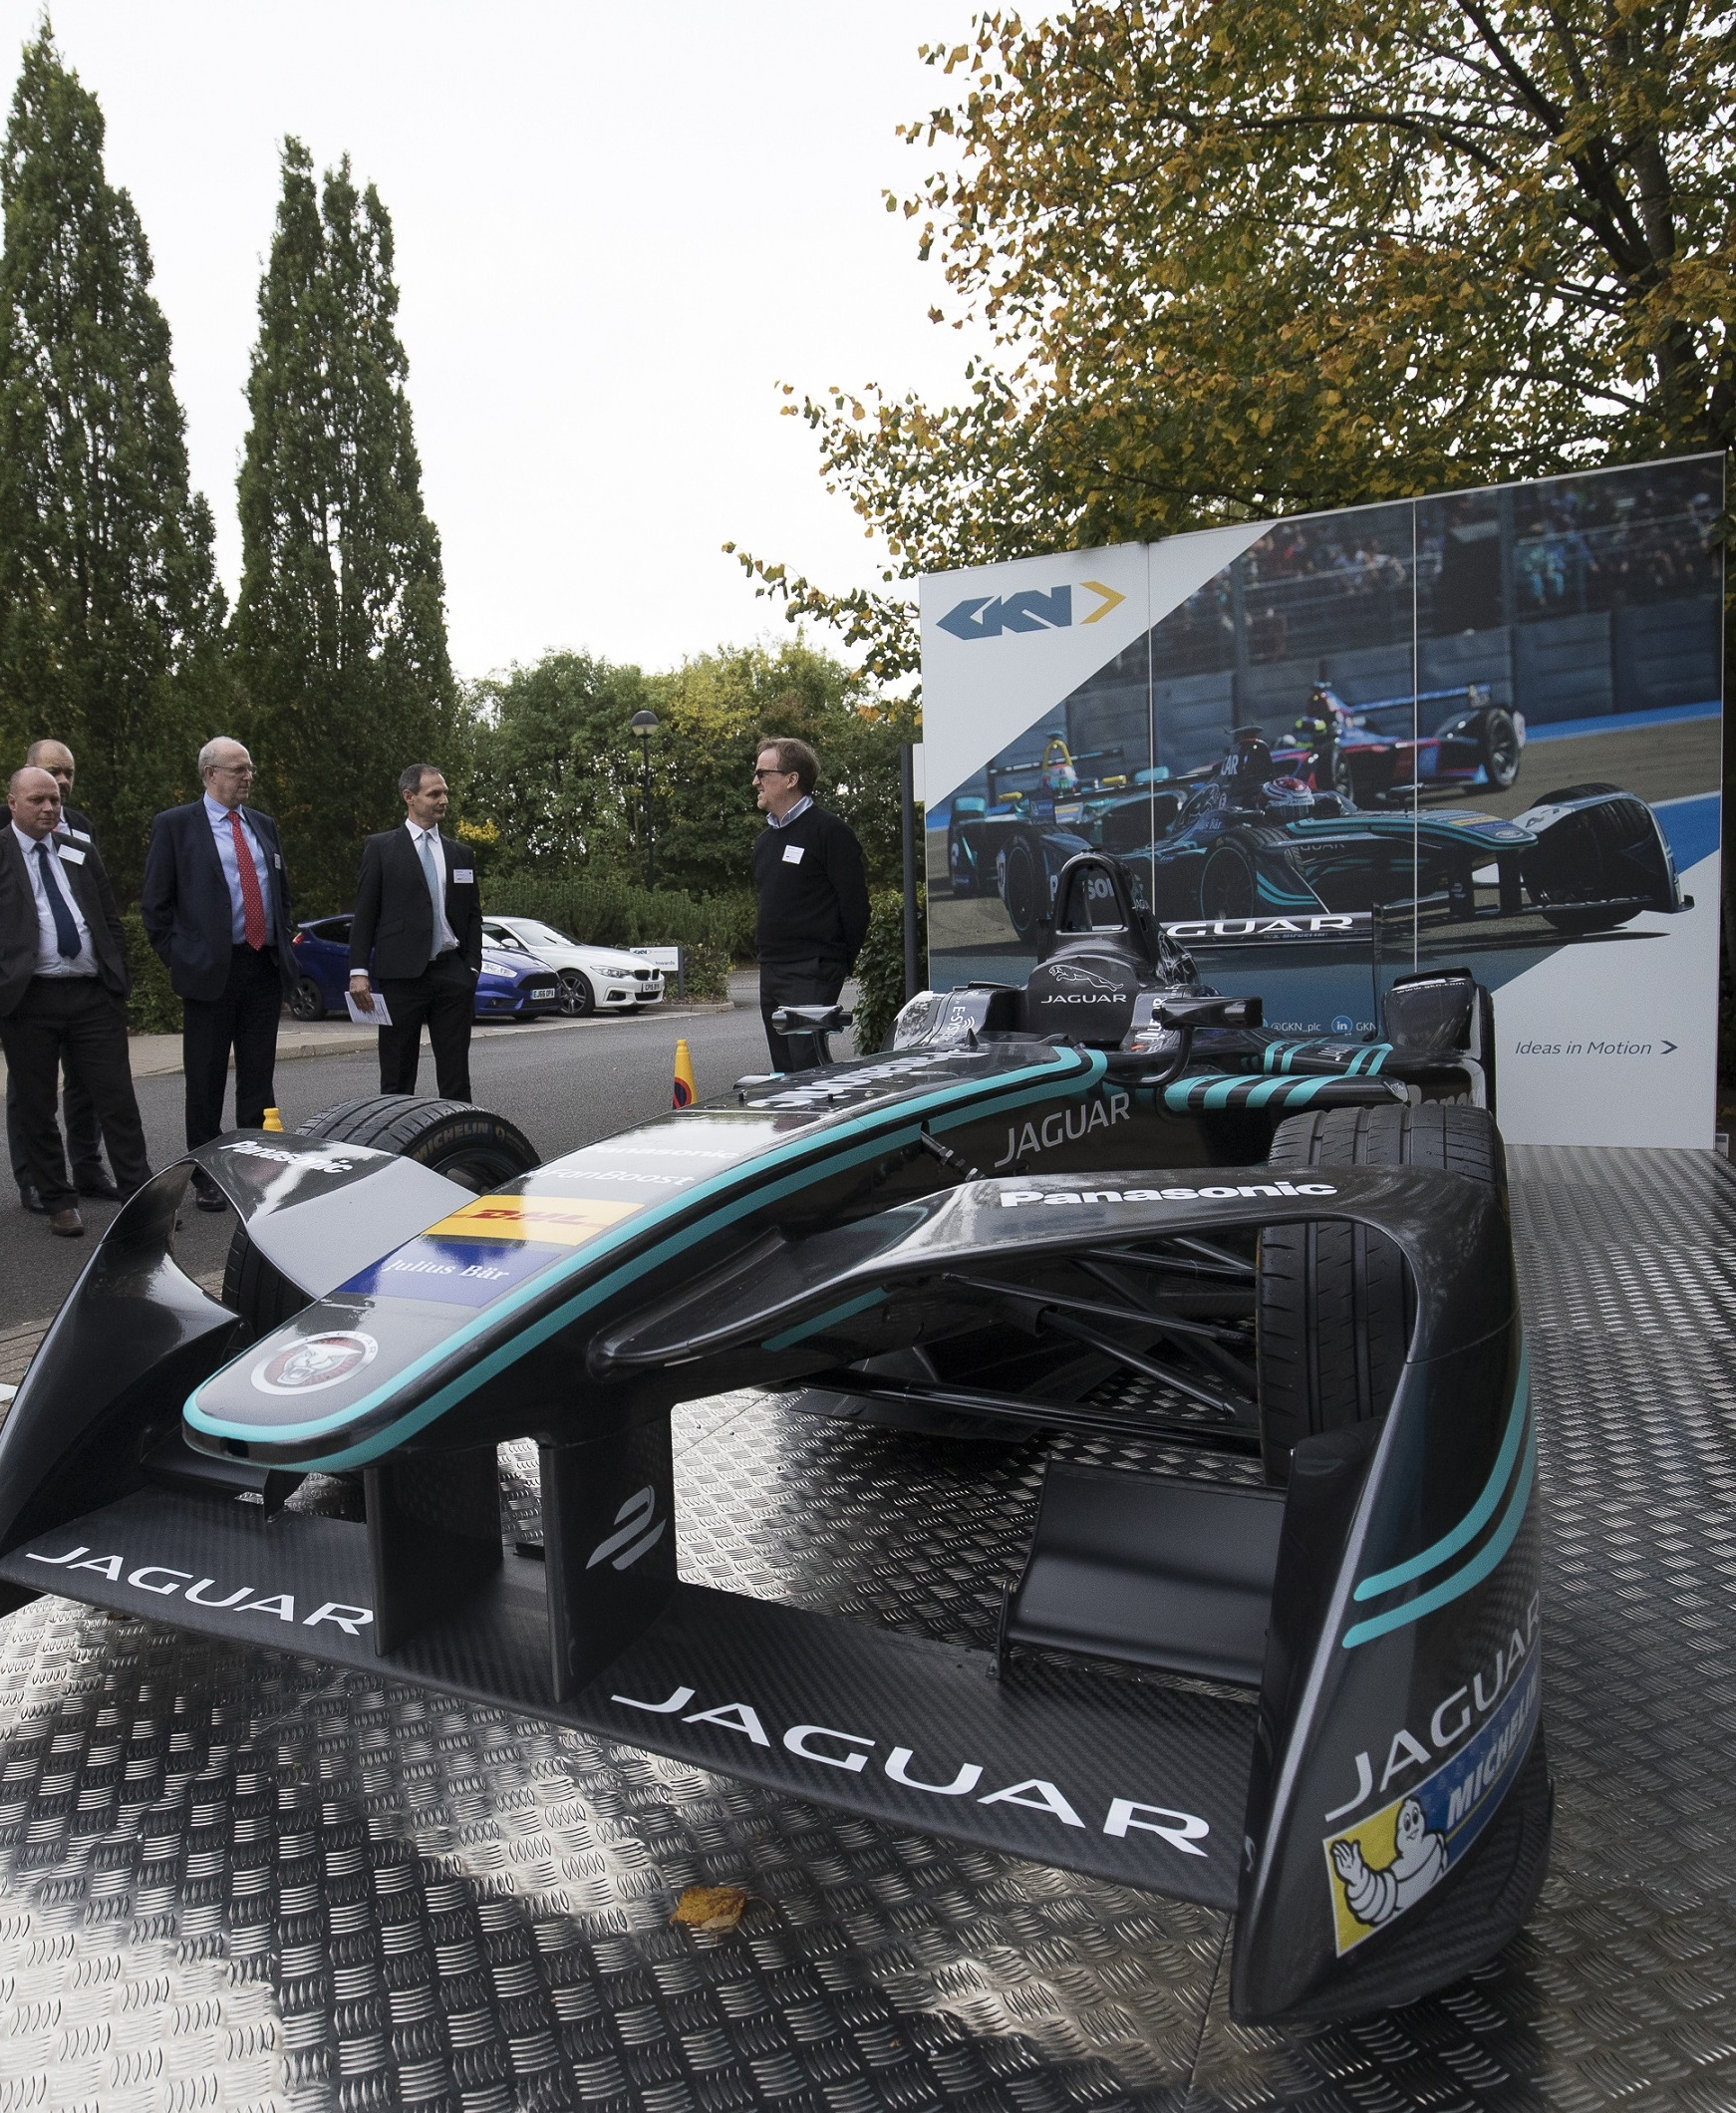 I-TYPE Jaguar Formula E racing car